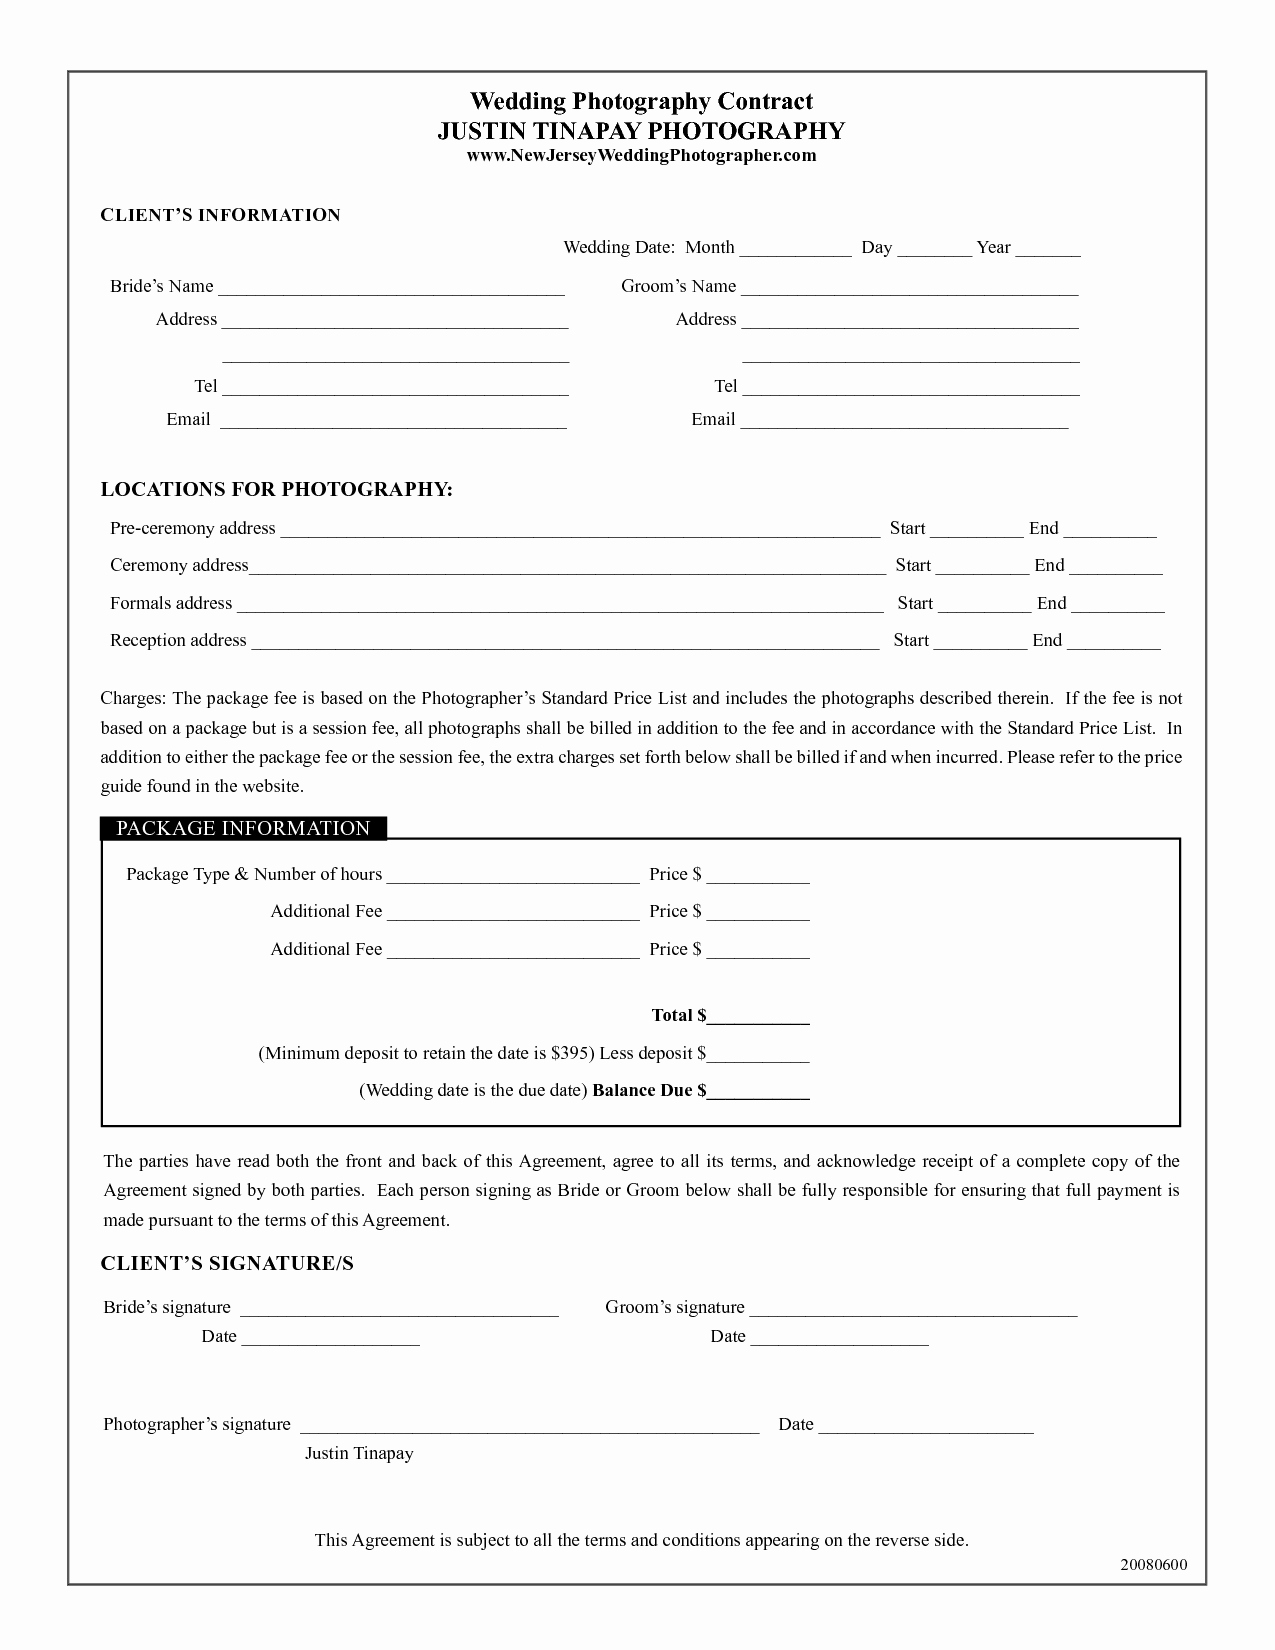 Wedding Photography Contract Pdf Awesome Photography Contract Template